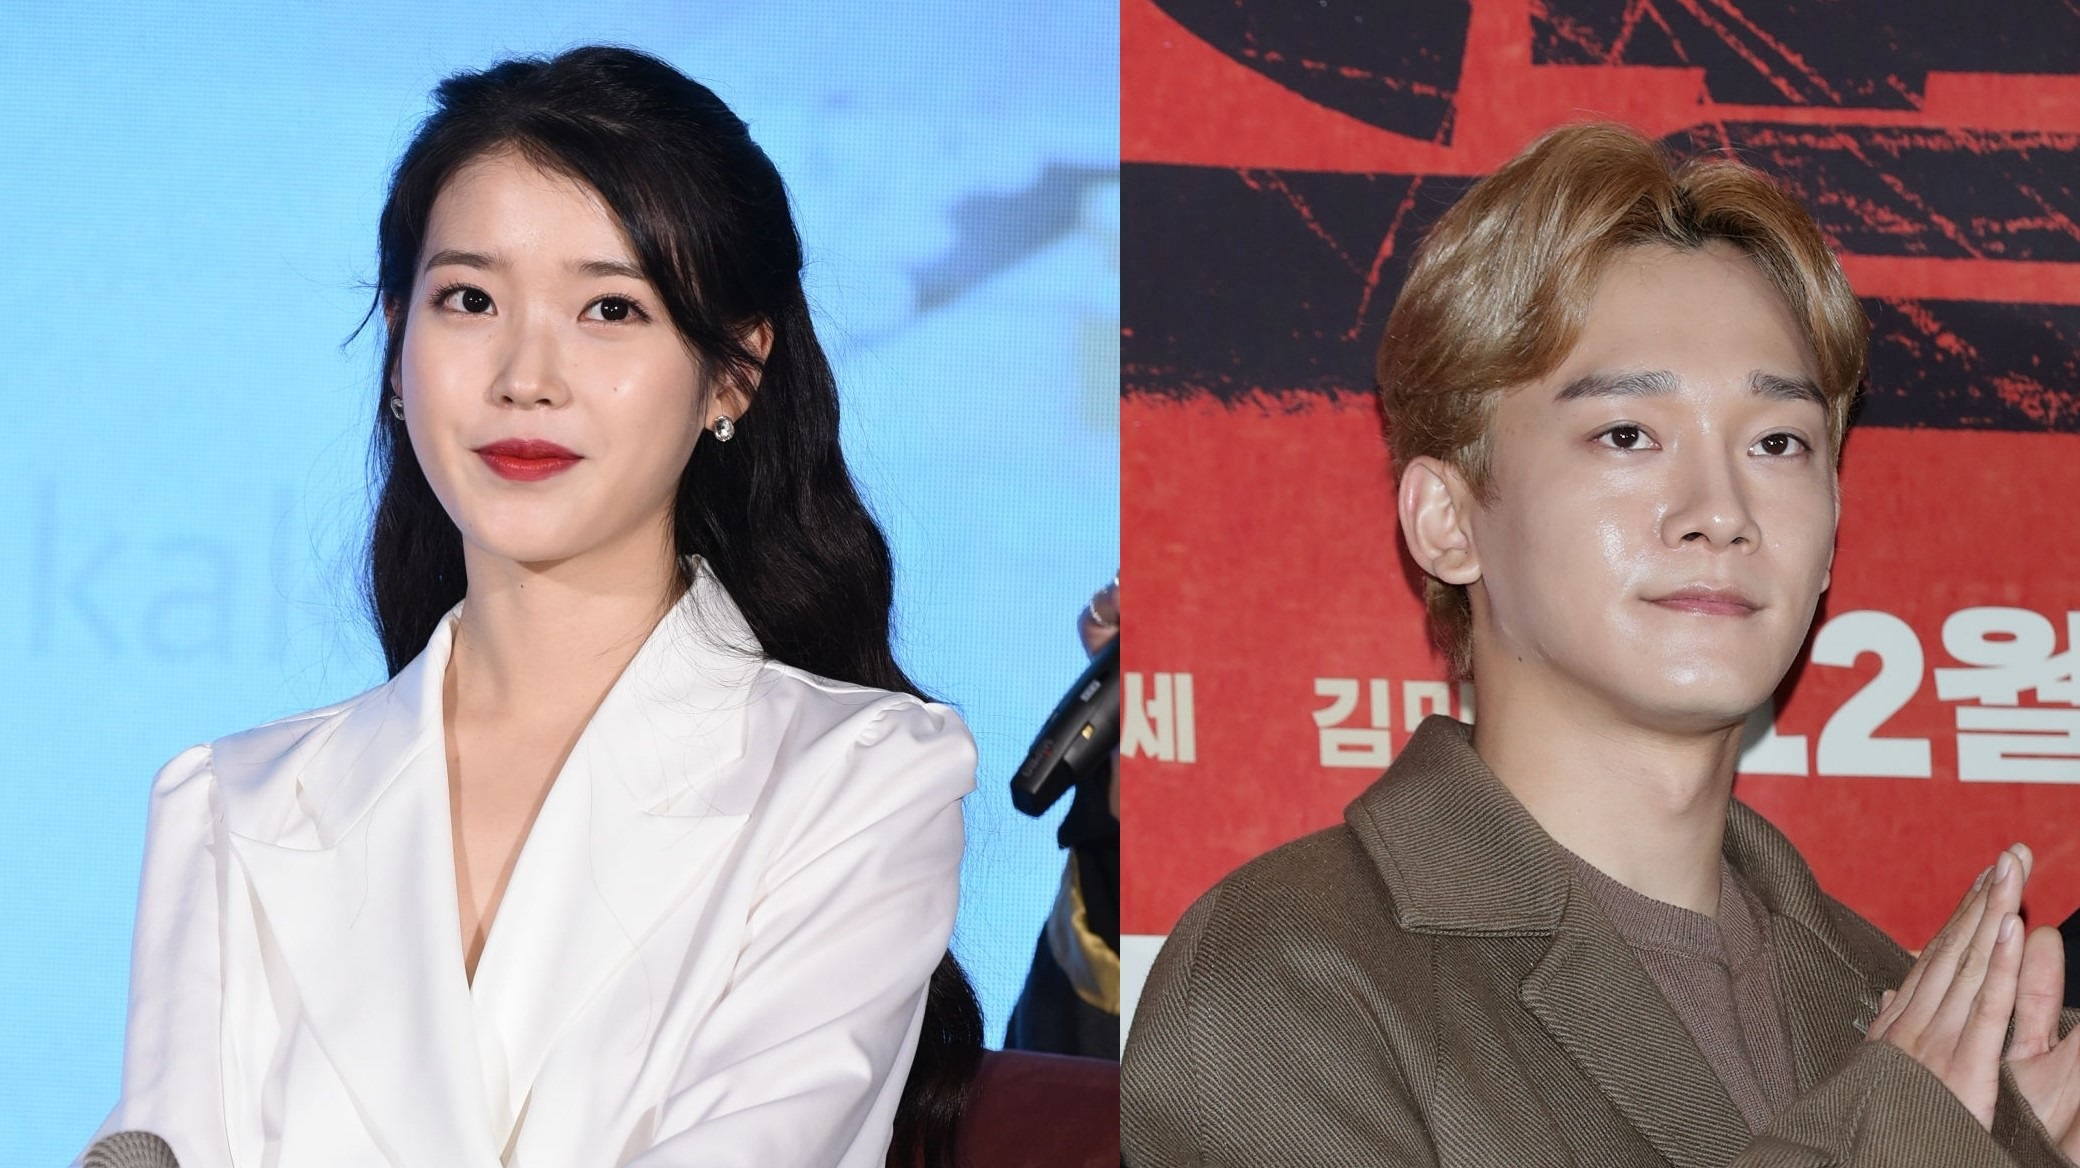 Kim Jongdae expresses a desire to work in collaboration with IU